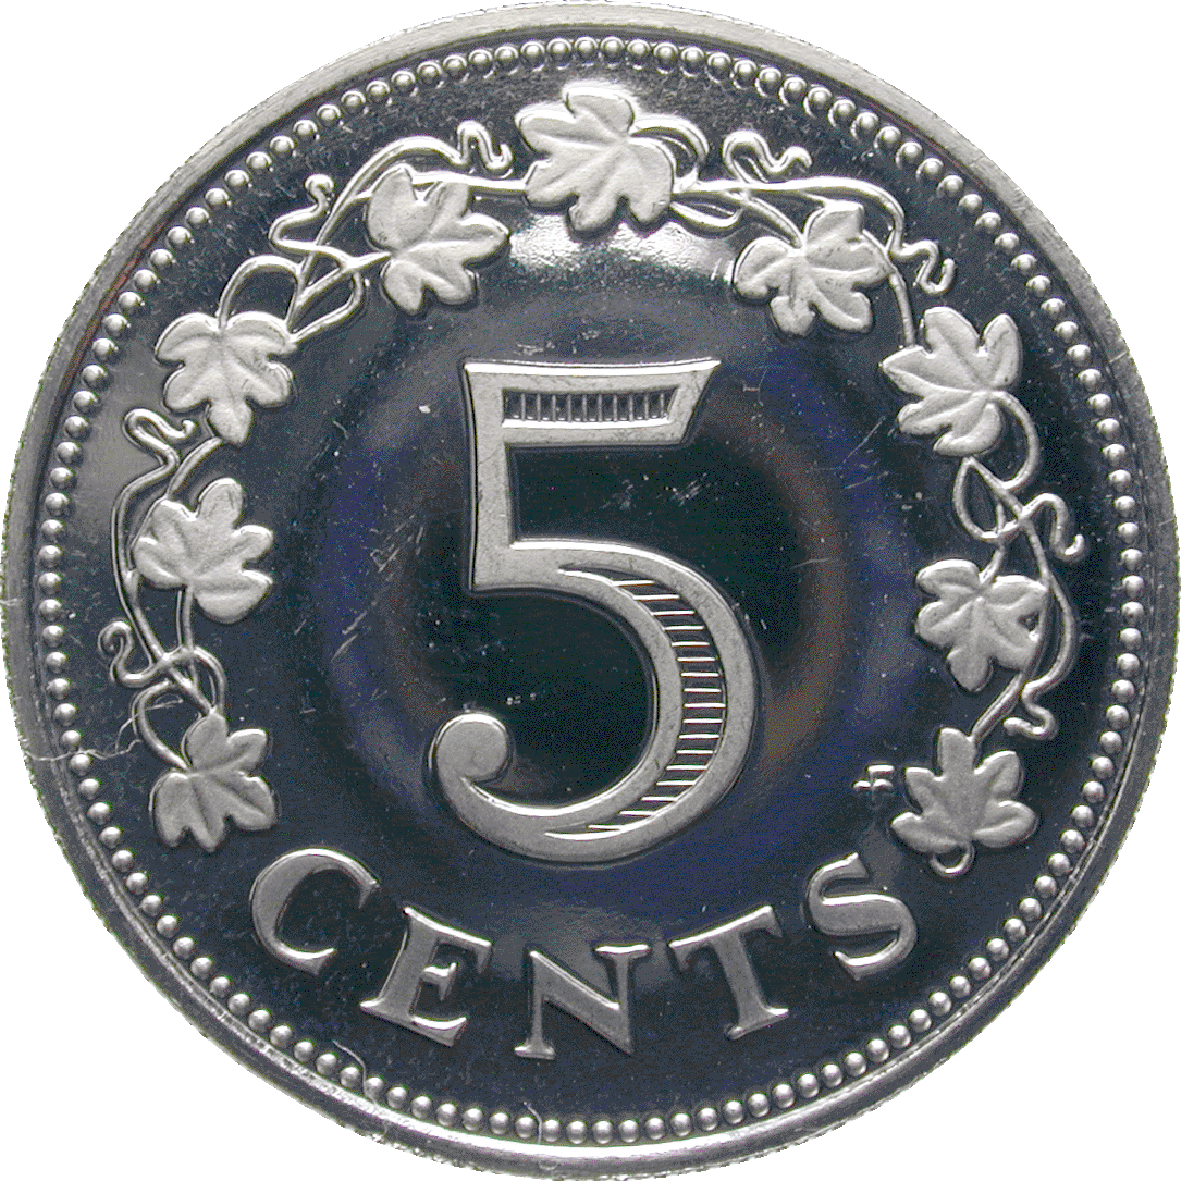 Republic of Malta, 5 Cents 1976 (reverse)